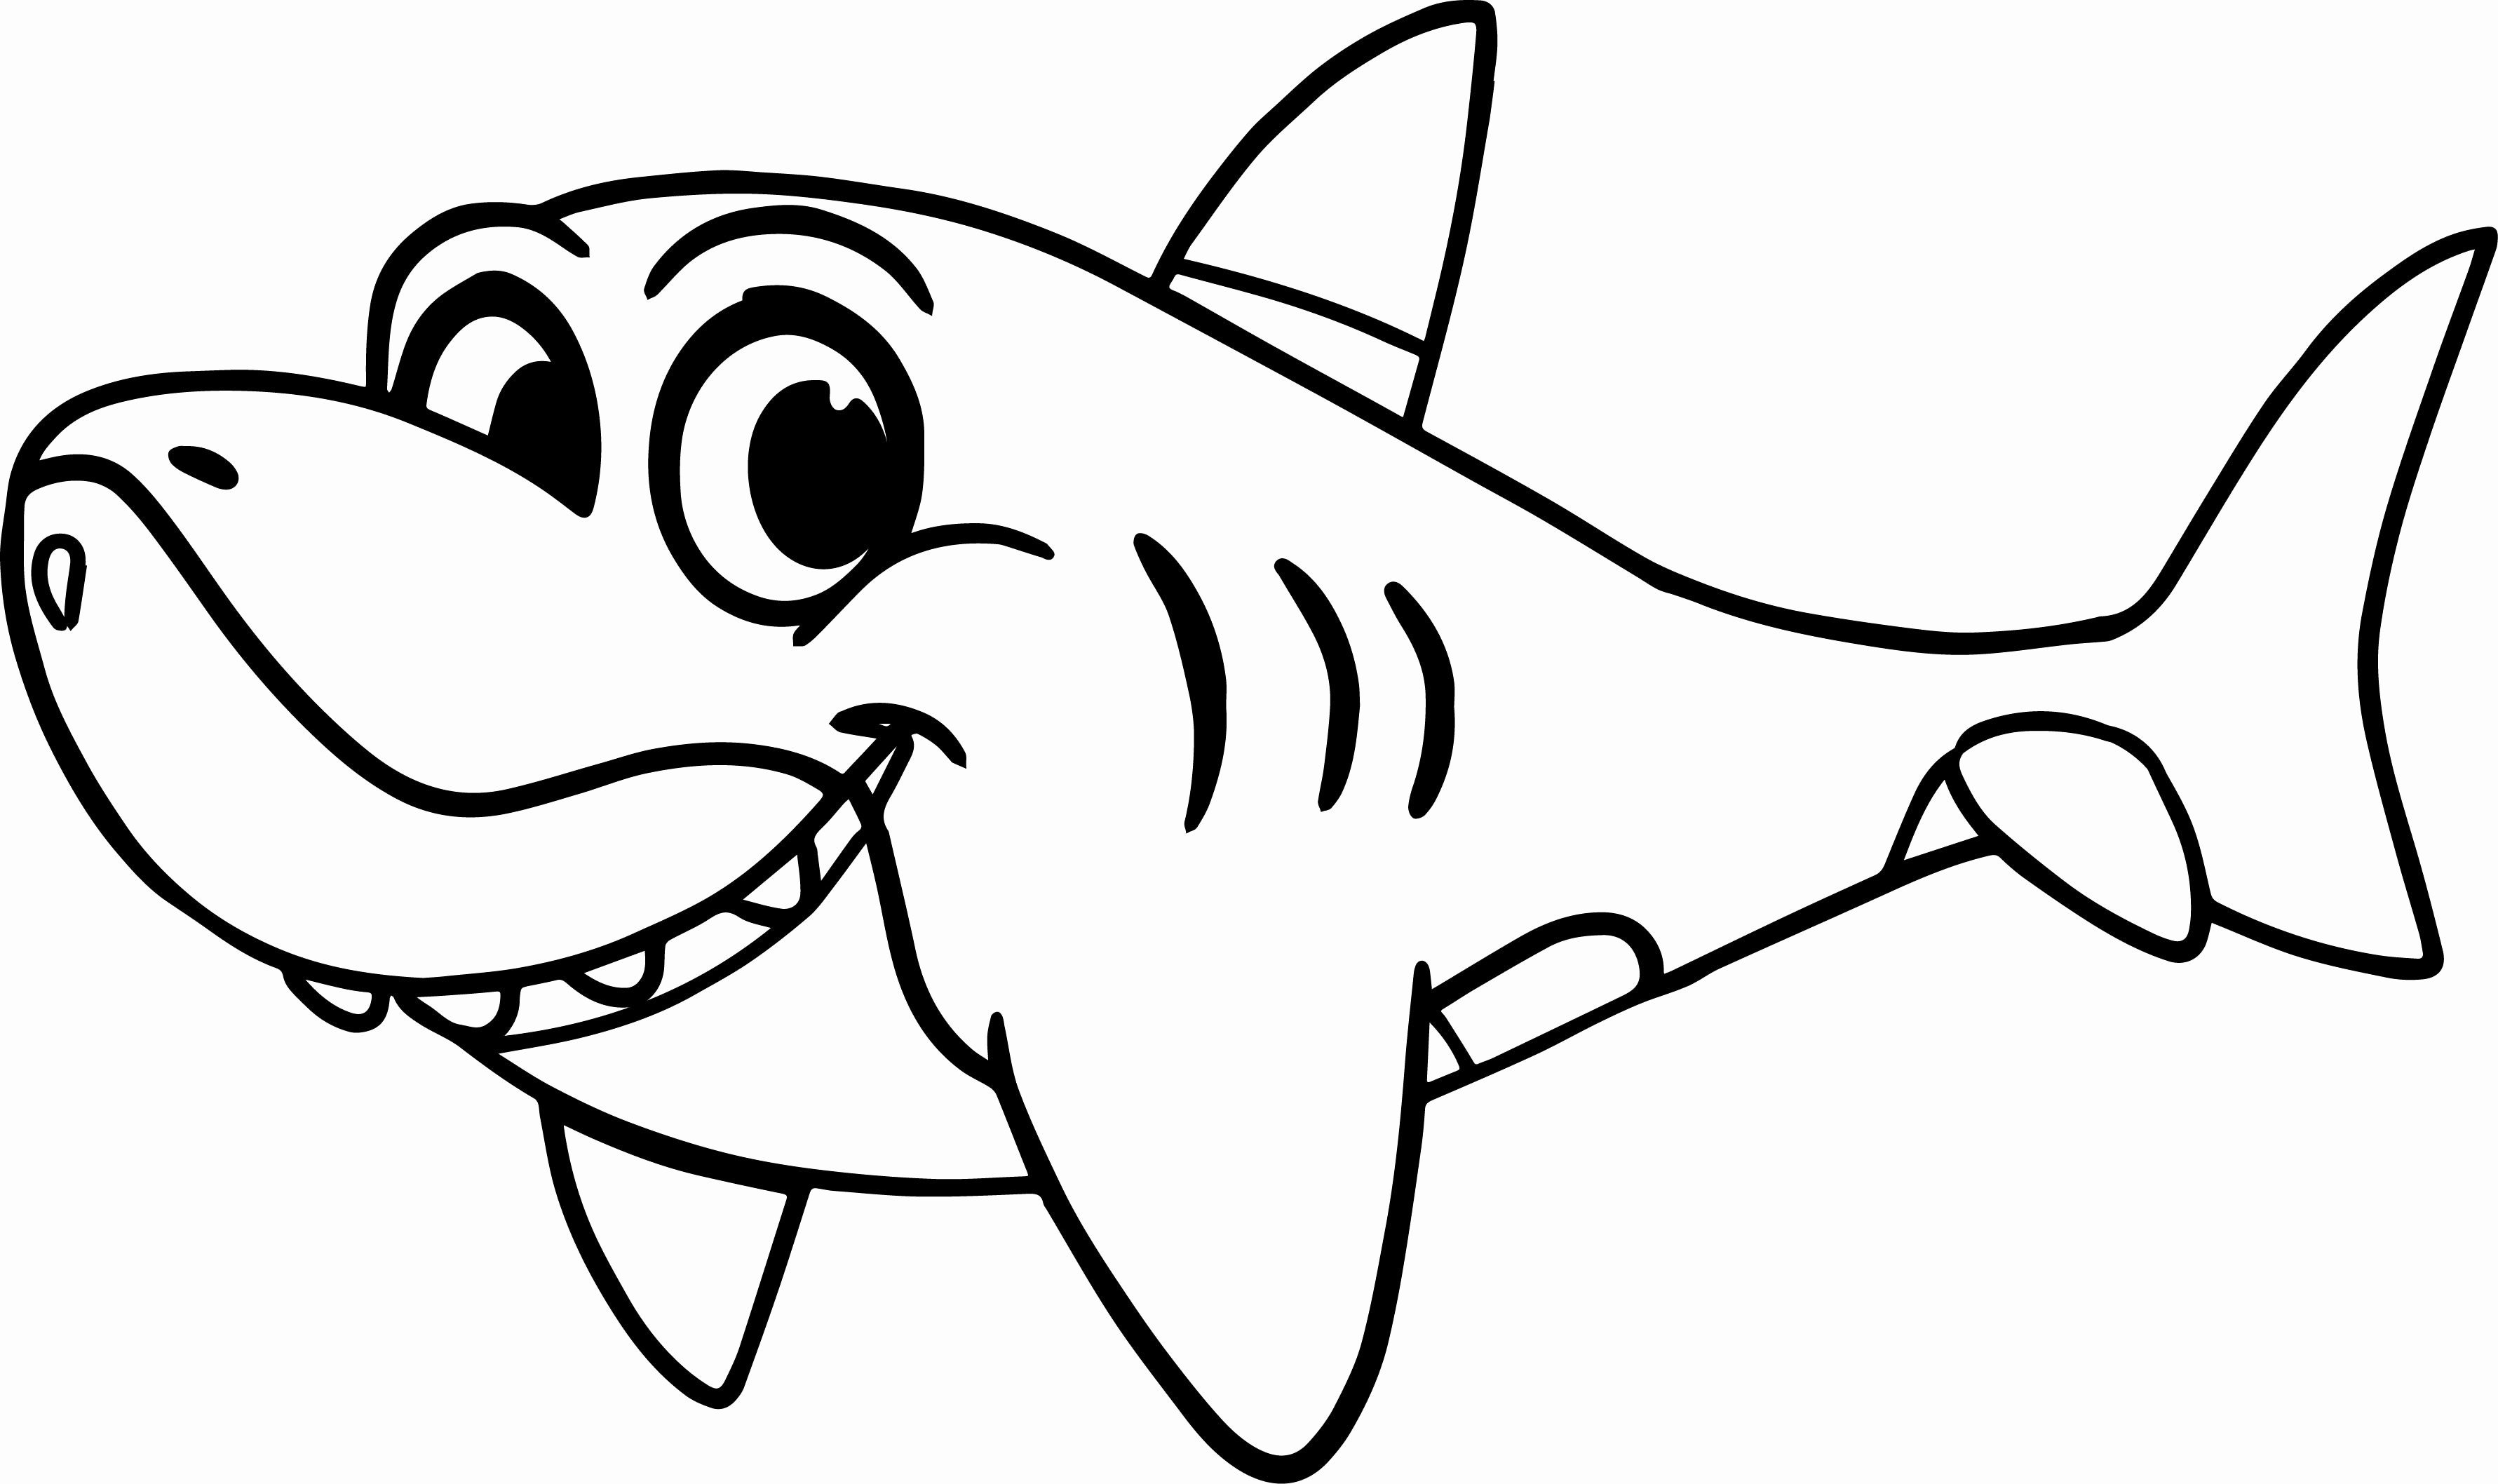 30+ Wonderful Photo of Coloring Pages Sharks